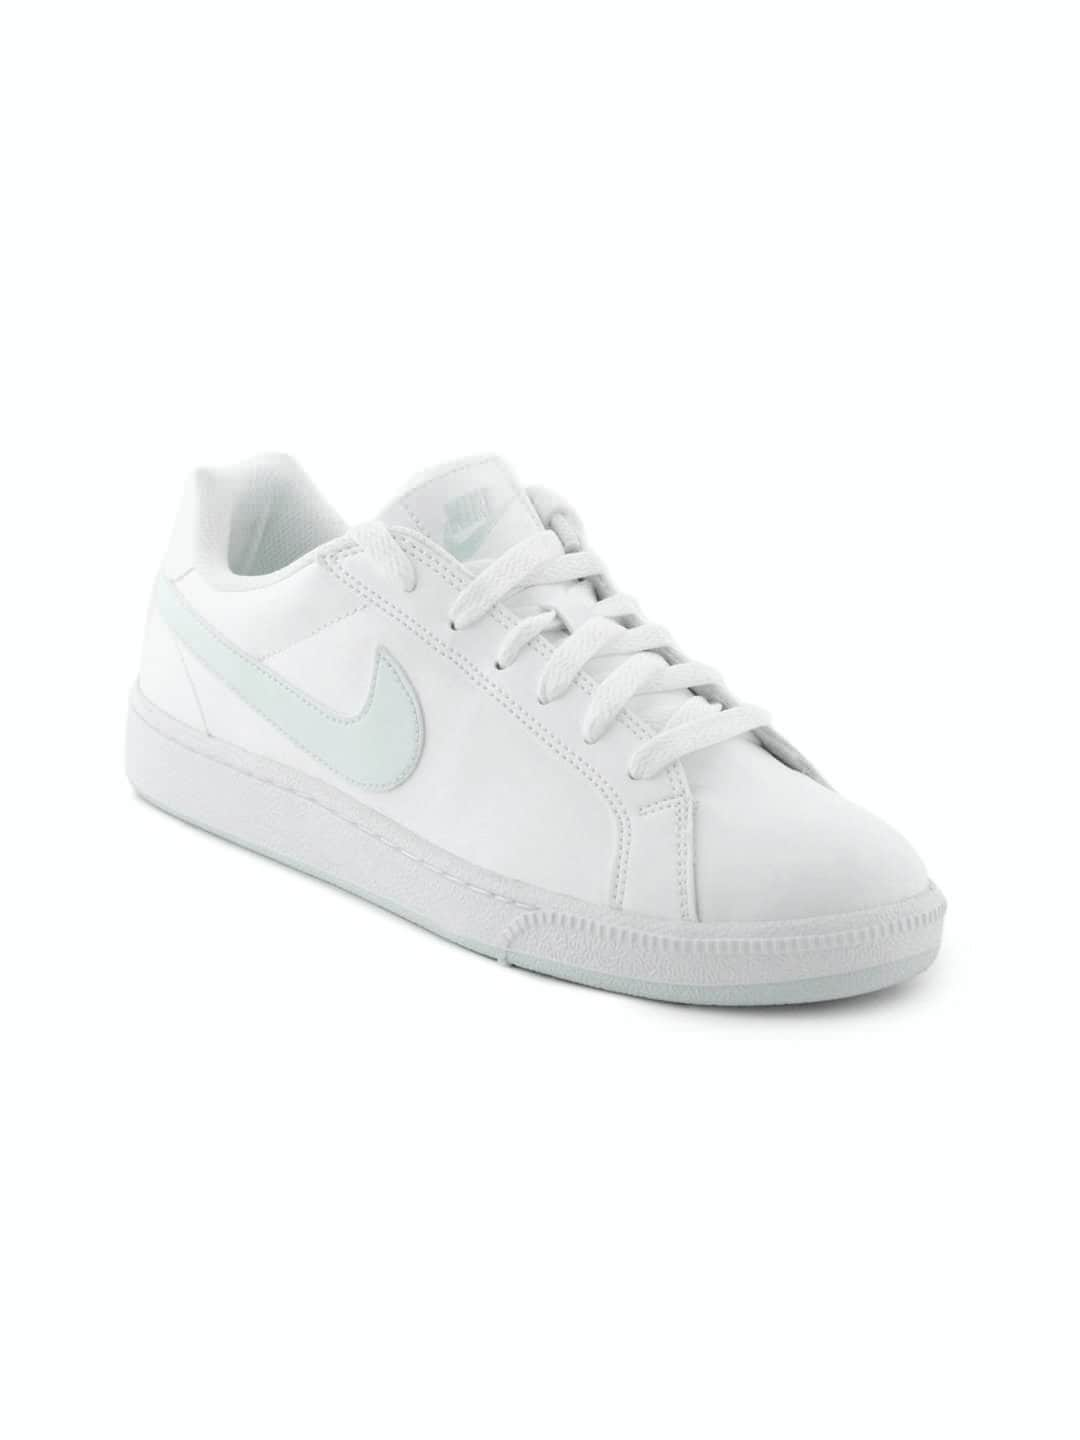 White nike shoes for women